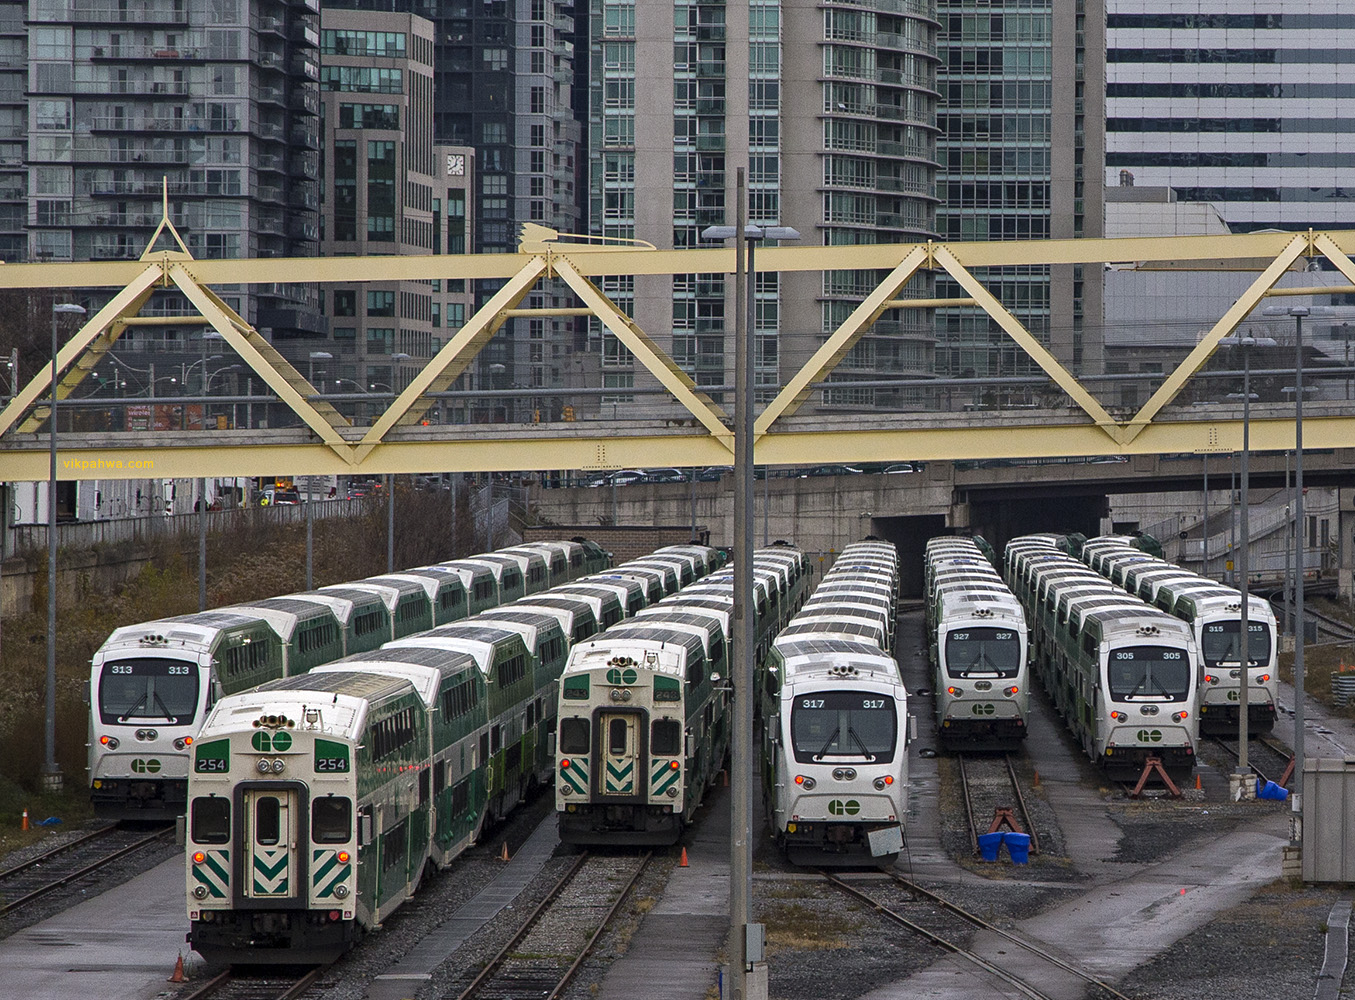 20170227. Several new GO Transit coach and cab cars await rush h